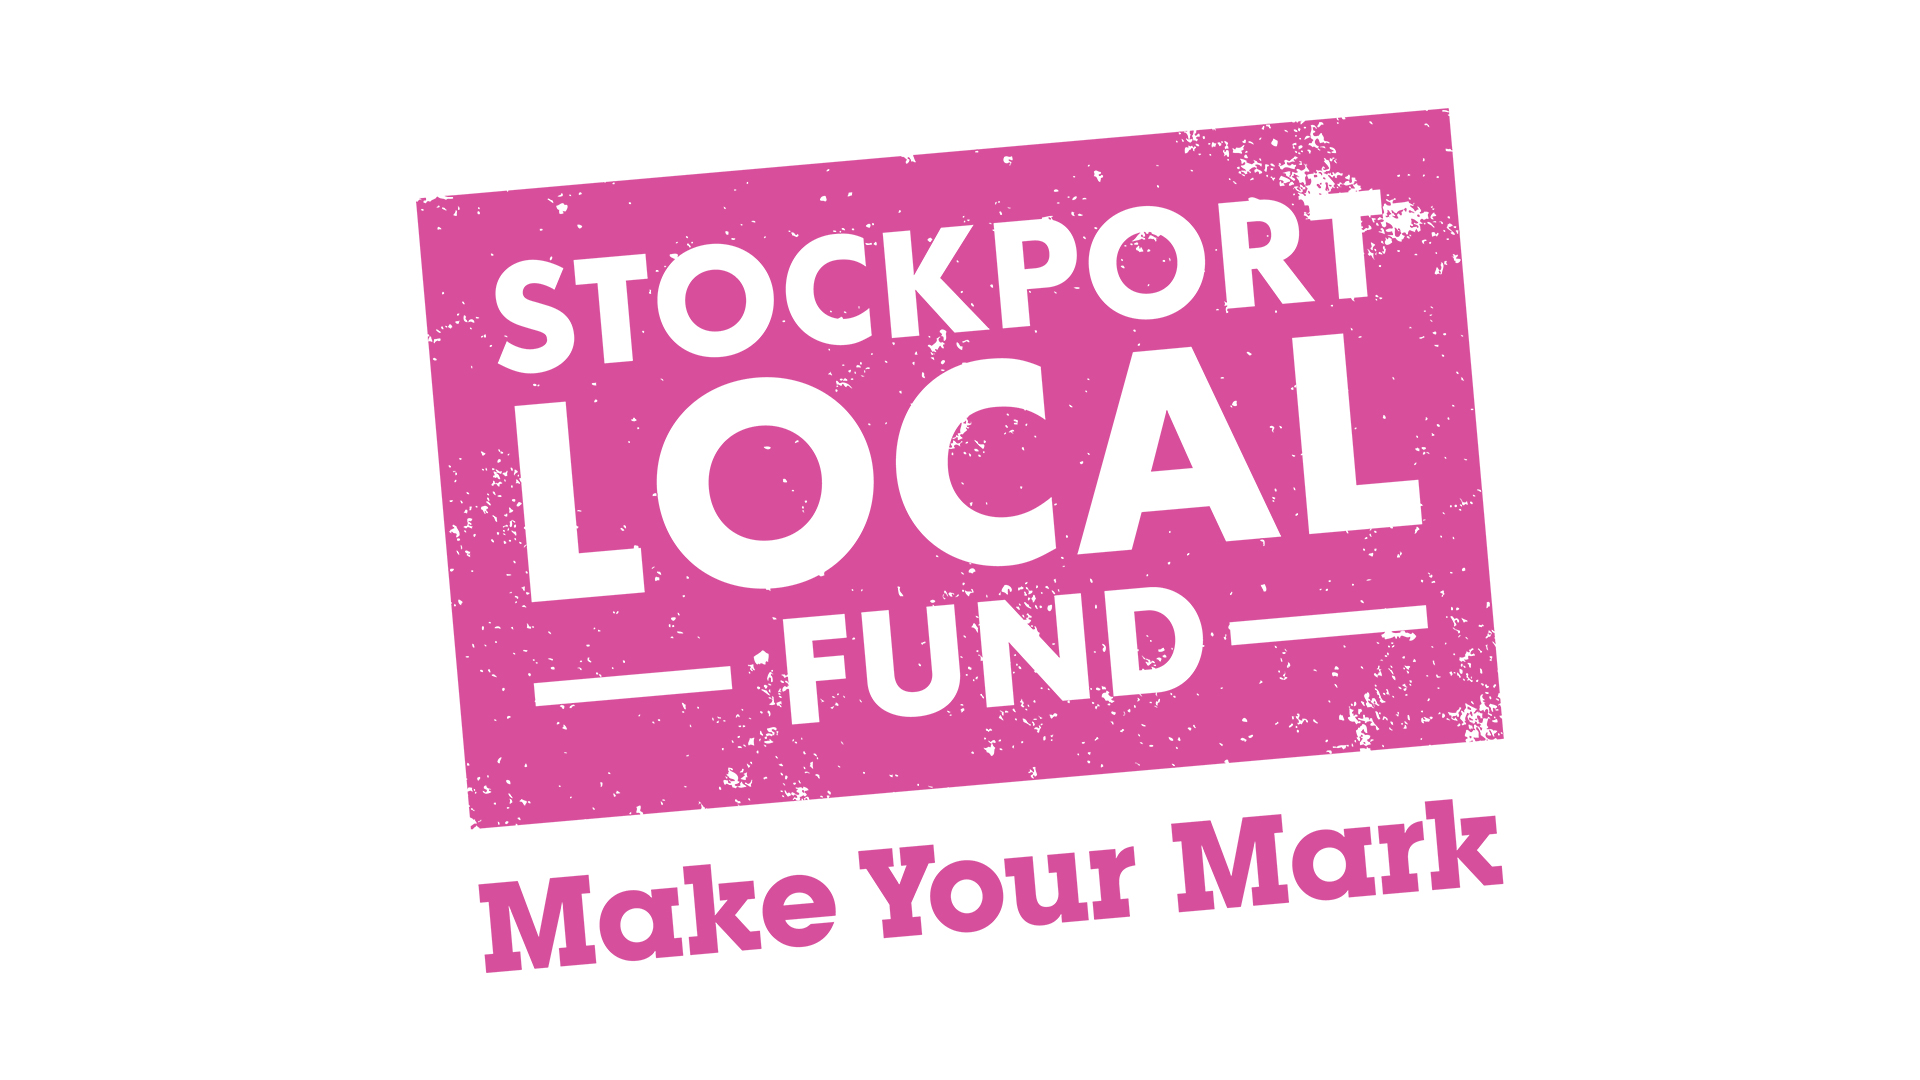 Another boost announced for community projects in Stockport